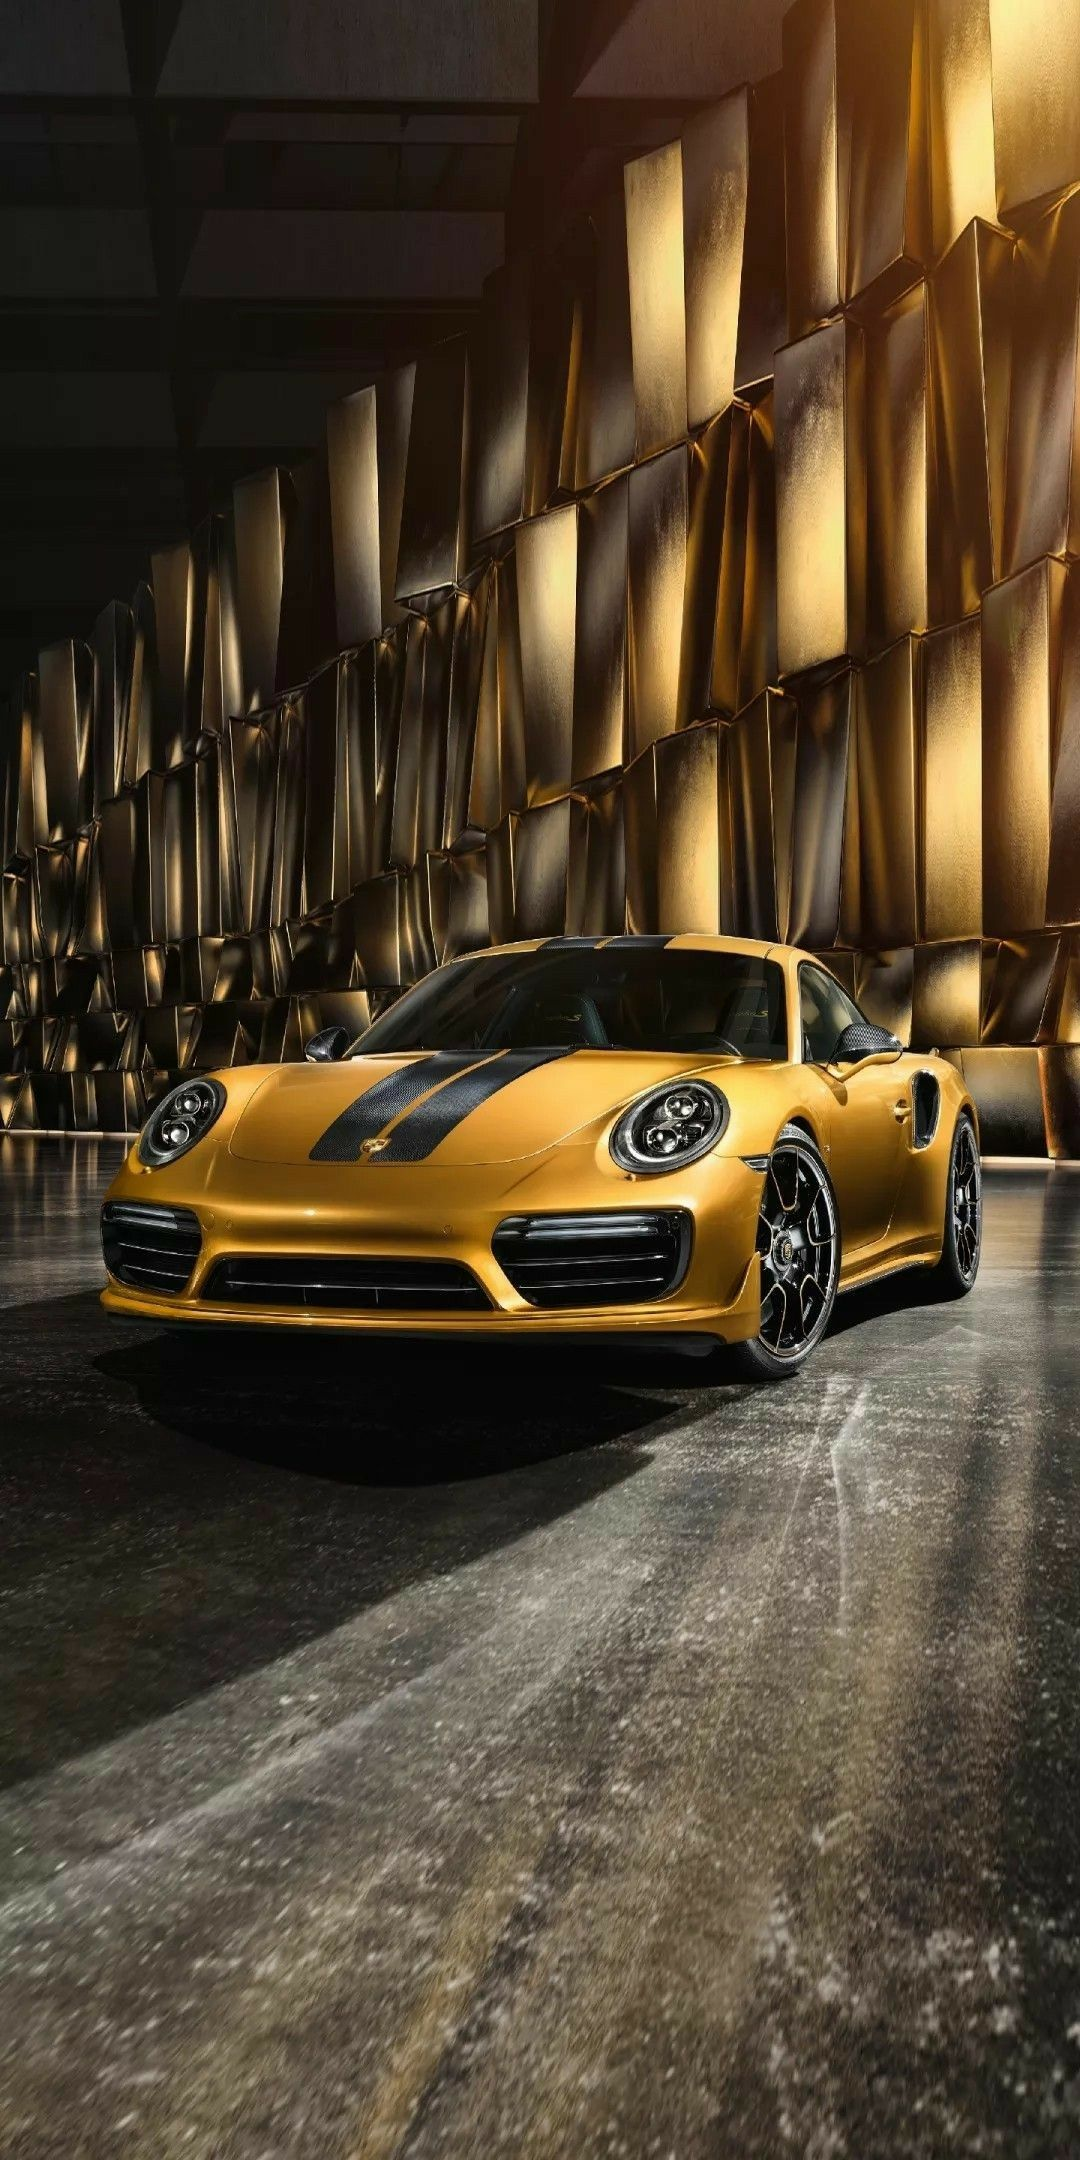 Porsche Hd Wallpapers Porsche Cars Super Luxury Cars Sports Cars Luxury